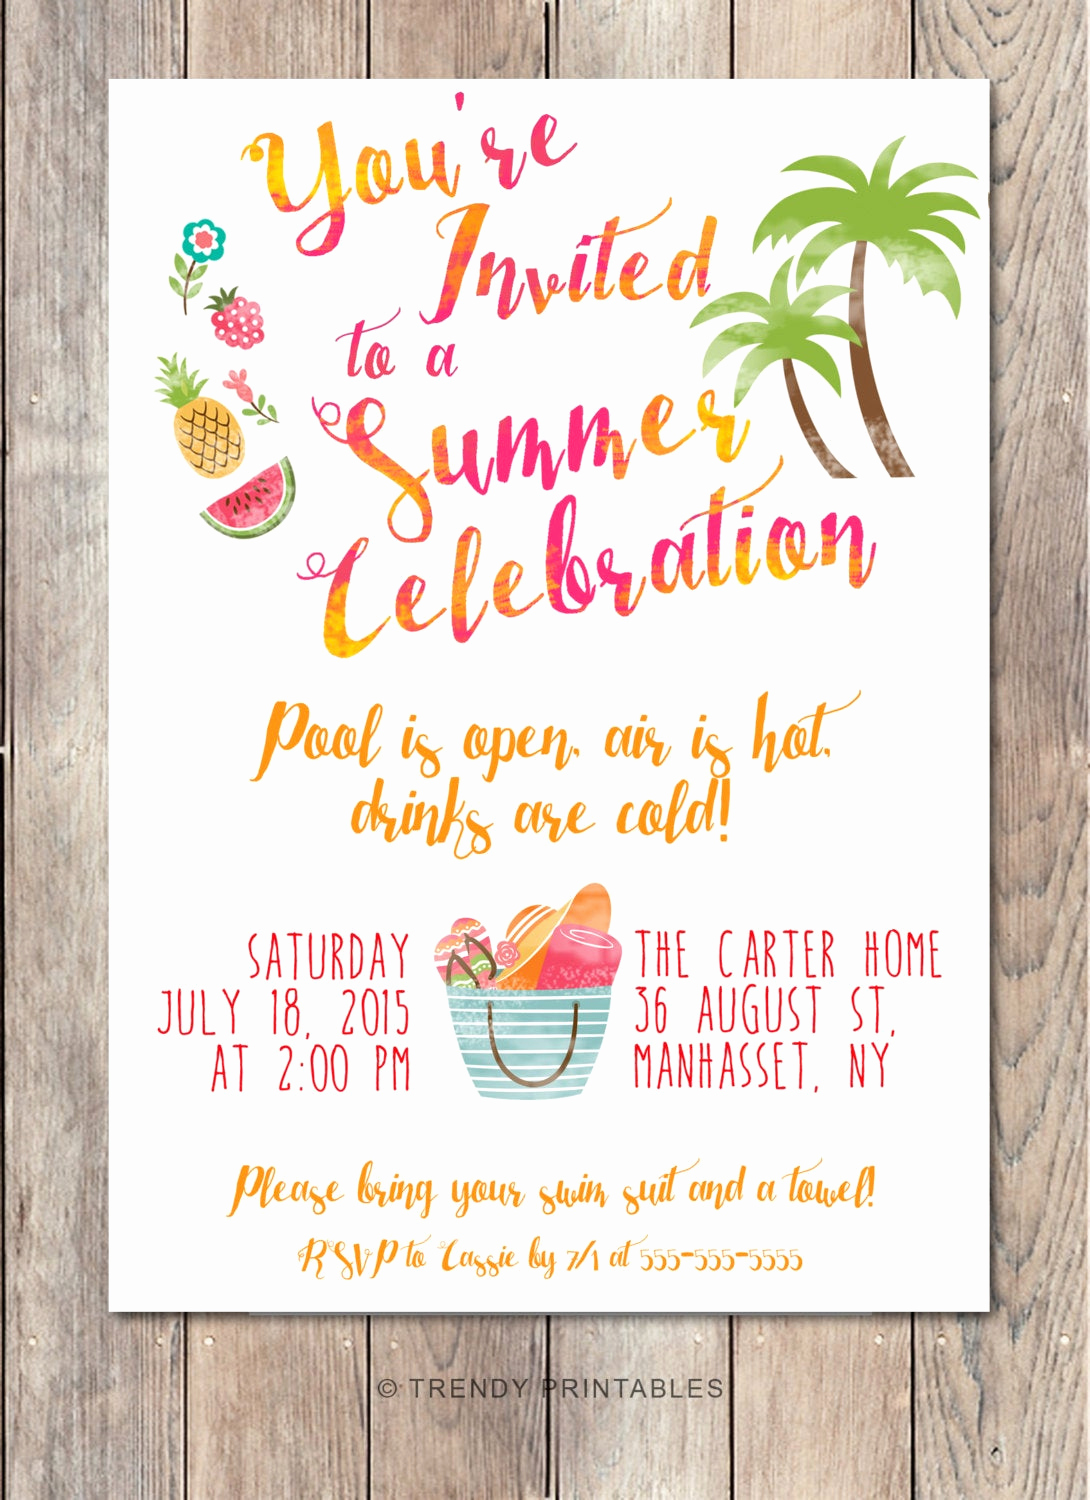 Summer Party Invitation Wording New Pool Party Invitation Summer Party Invitation Back Yard